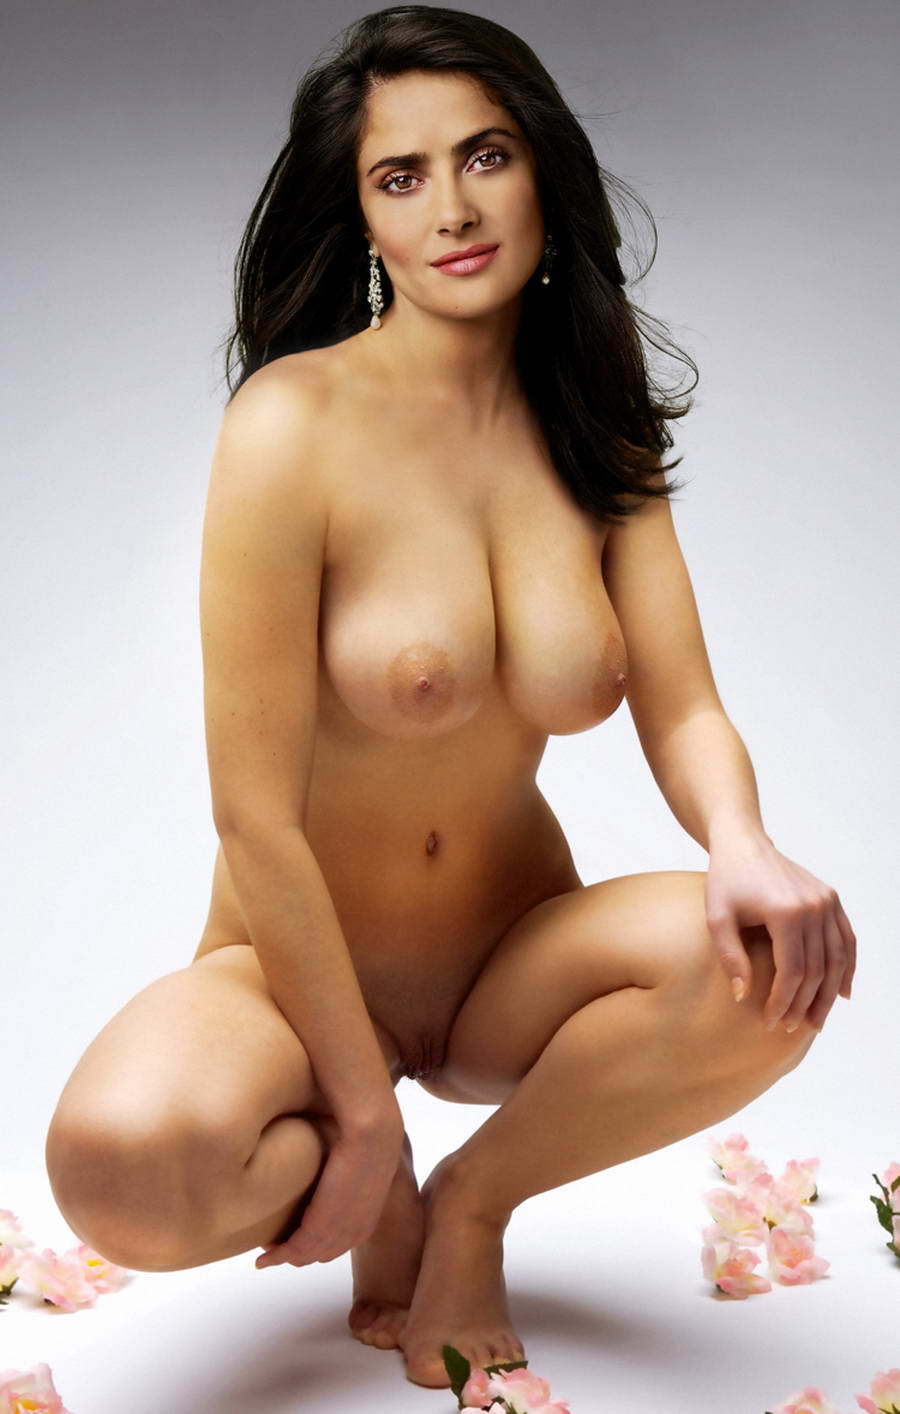 Salma hayek pussy hairy pussy think, that